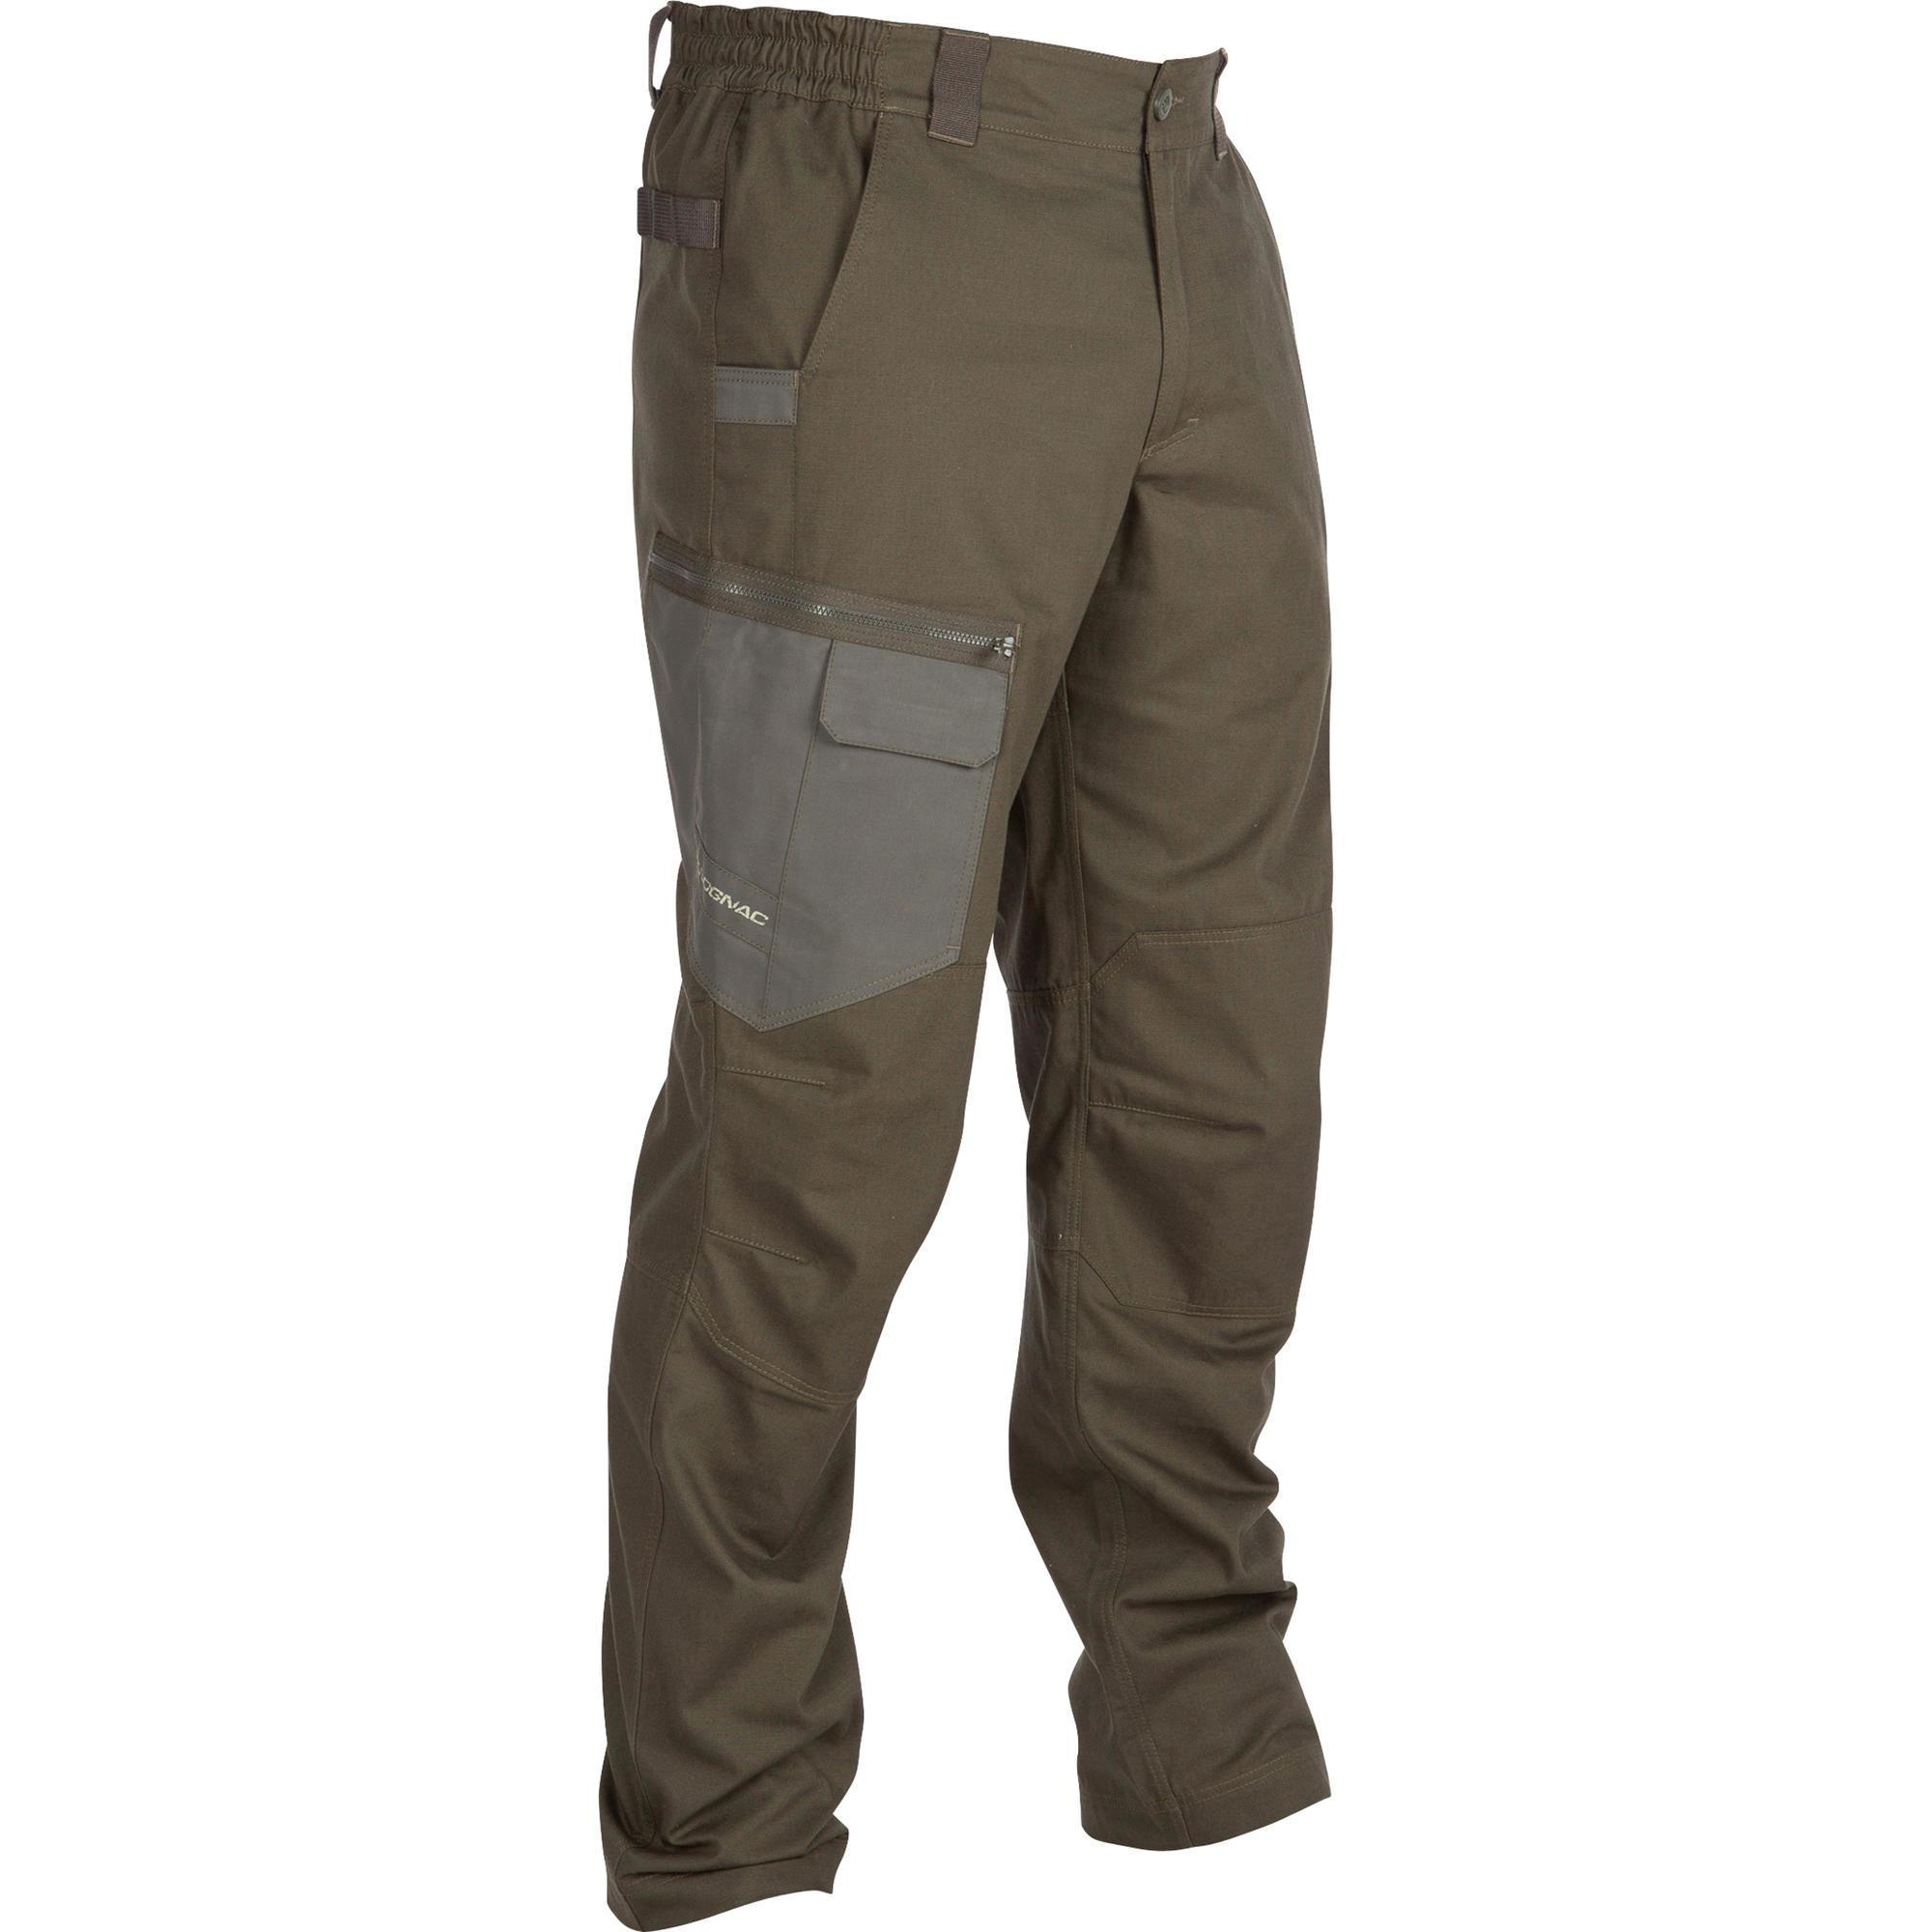 Hunting trousers 900